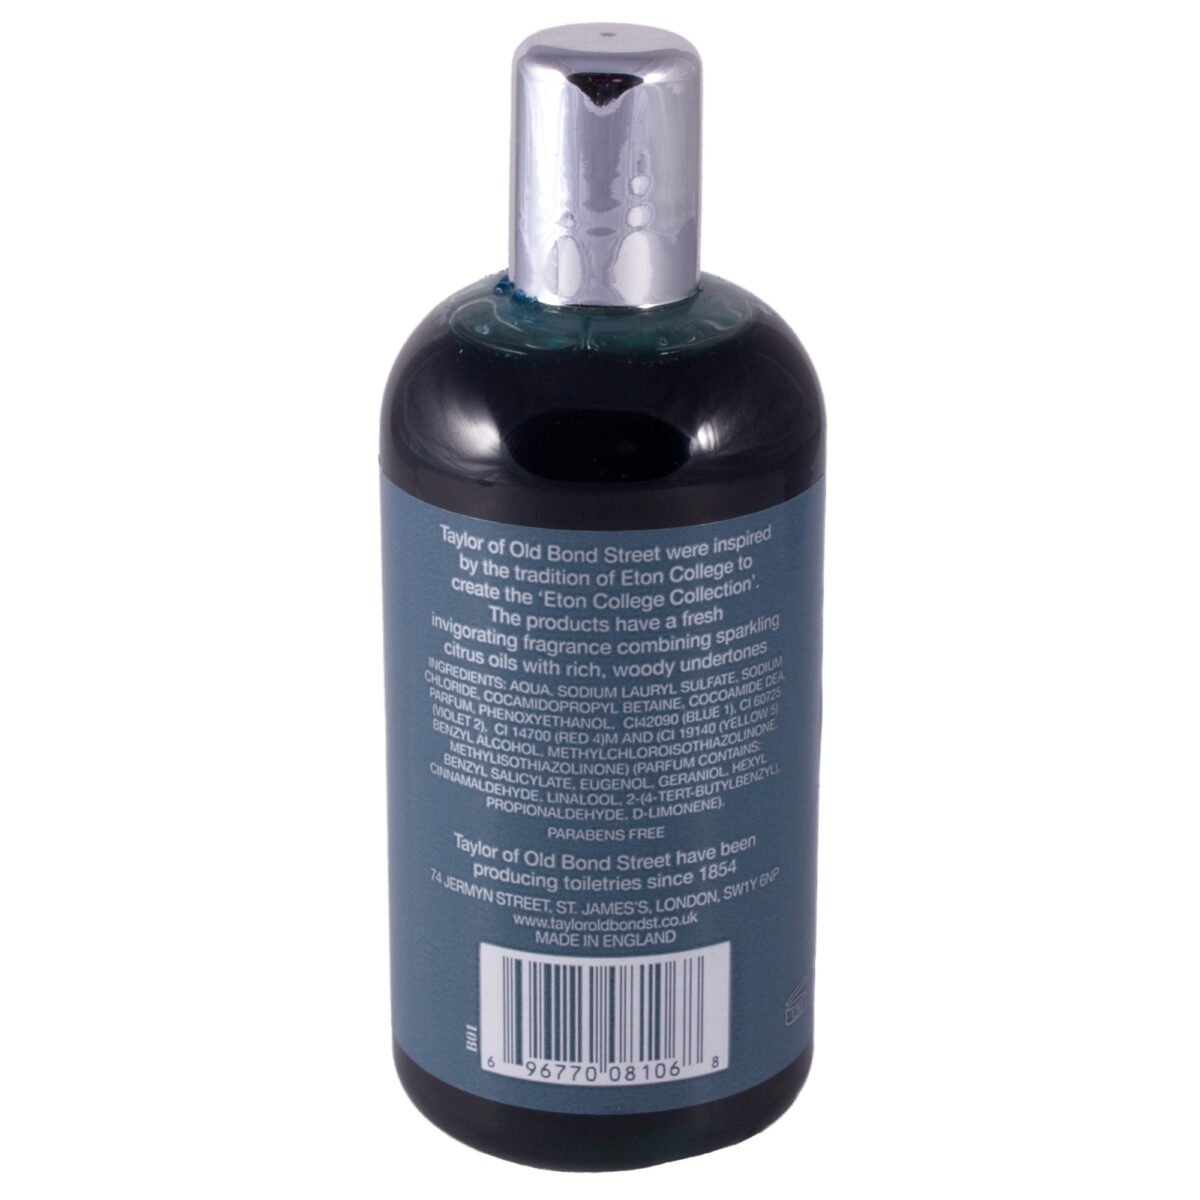 Taylor of Old Bond Street Eton College Mens Hair and Body Shampoo 200ml-7412